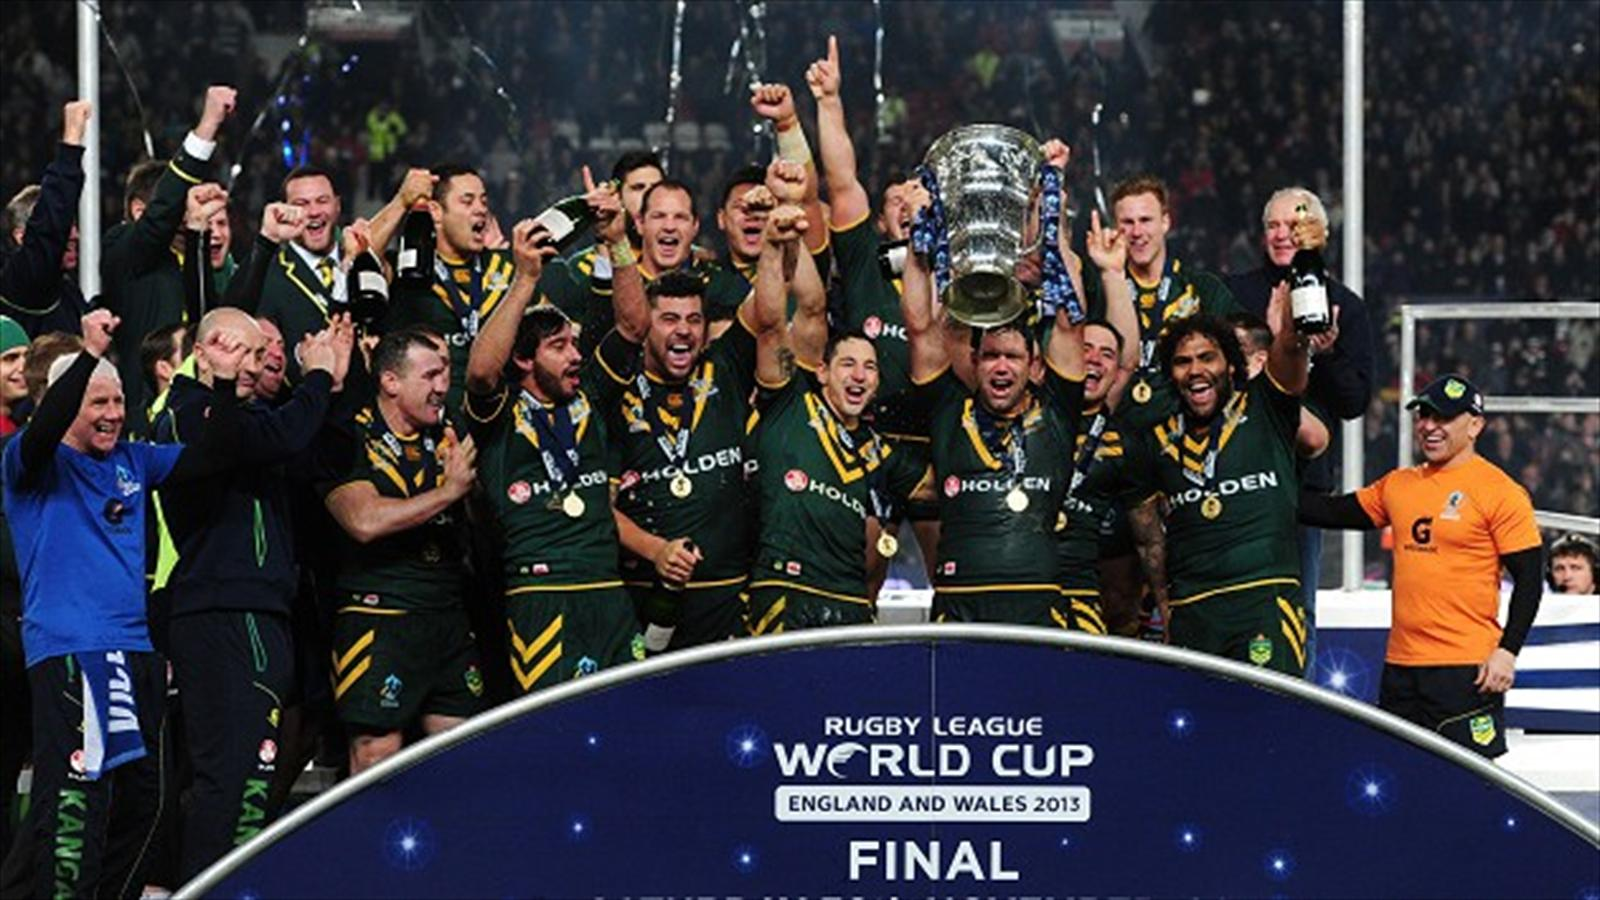 2021 World Cup announcement in 2016 - Rugby League ...